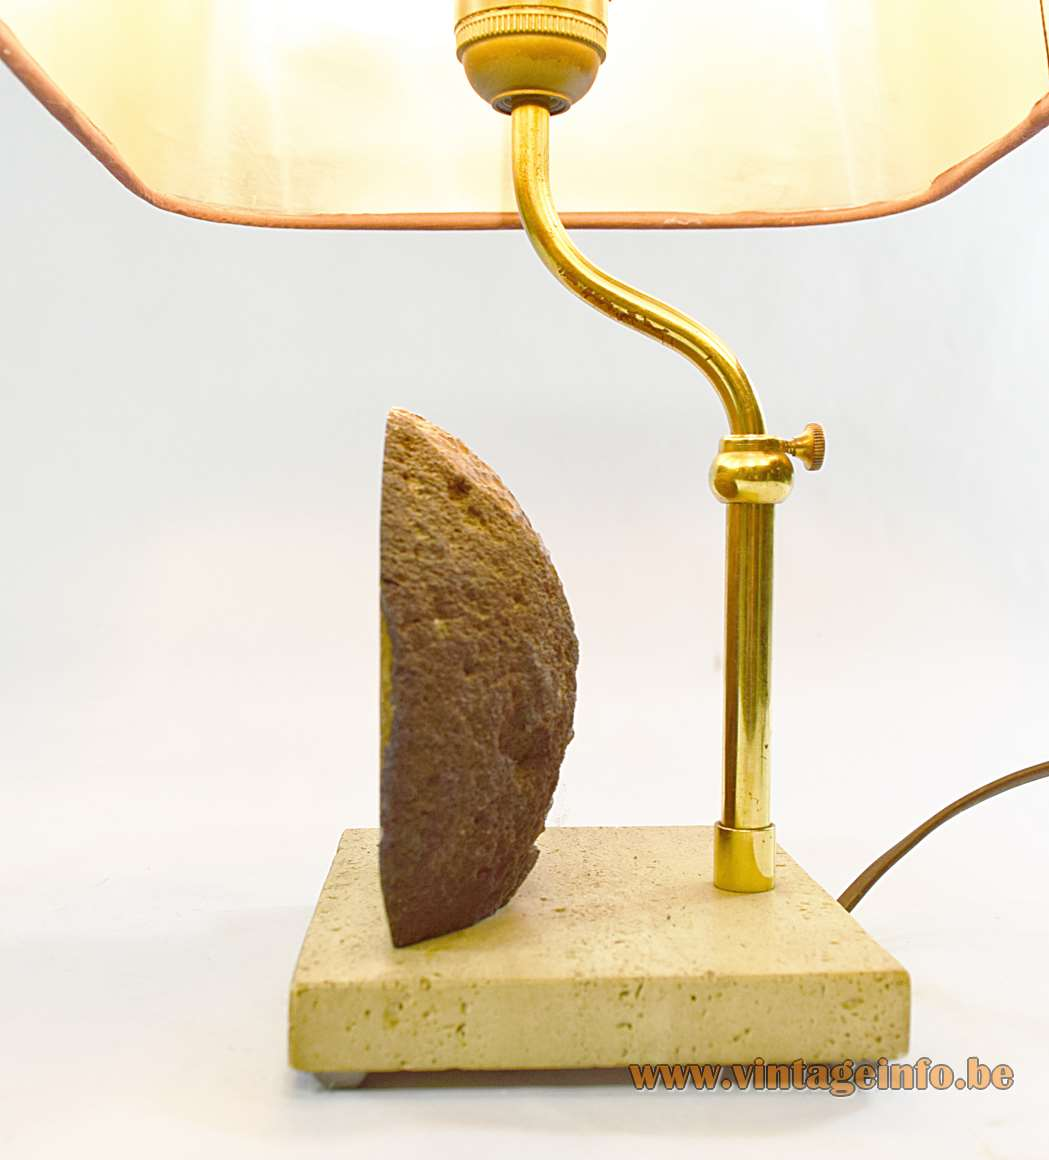 Pierre Faveere Agate Geode Table Lamp 1970s mineral stone travertine brass maroon cardboard lampshade